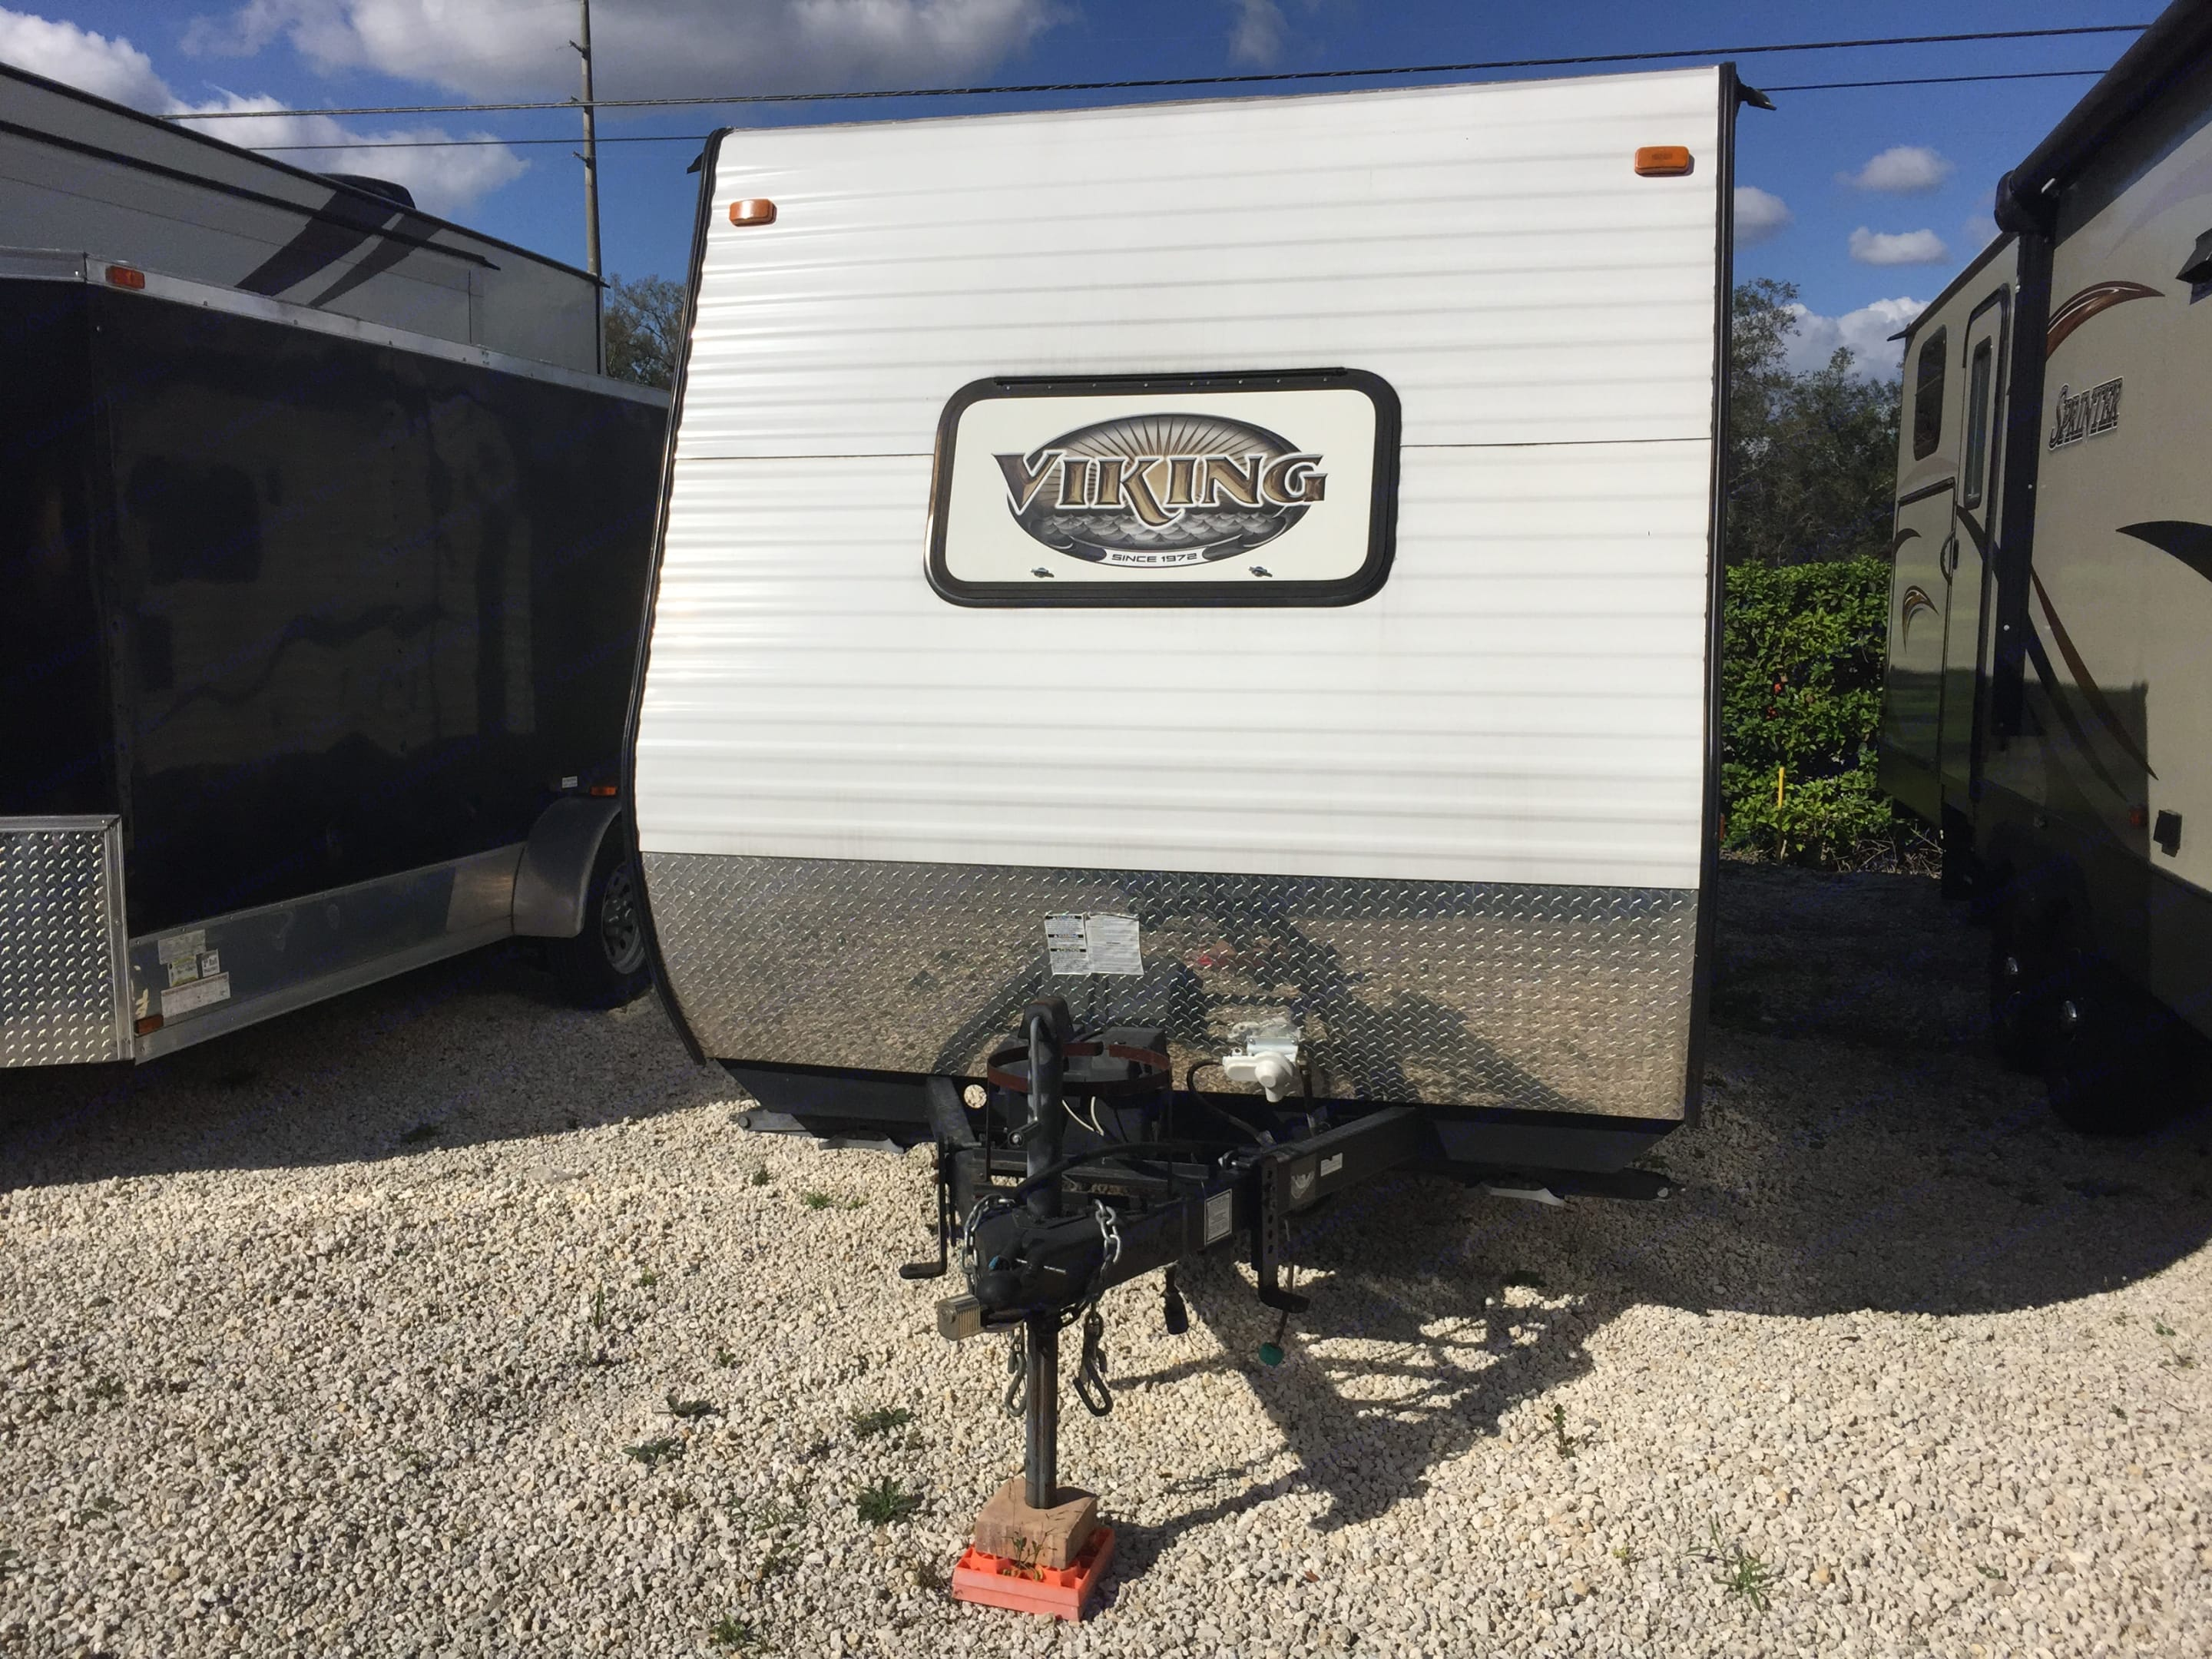 Heavy duty tongue and hitch mount for safer traveling on highways! This is also where the propane tank is stored which is included as part of the rental! You will need the propane tank for the hot water heater along with the stove top area and the furnace in Winter! This area is also where the back up battery is stored.. Coachmen Viking 2015